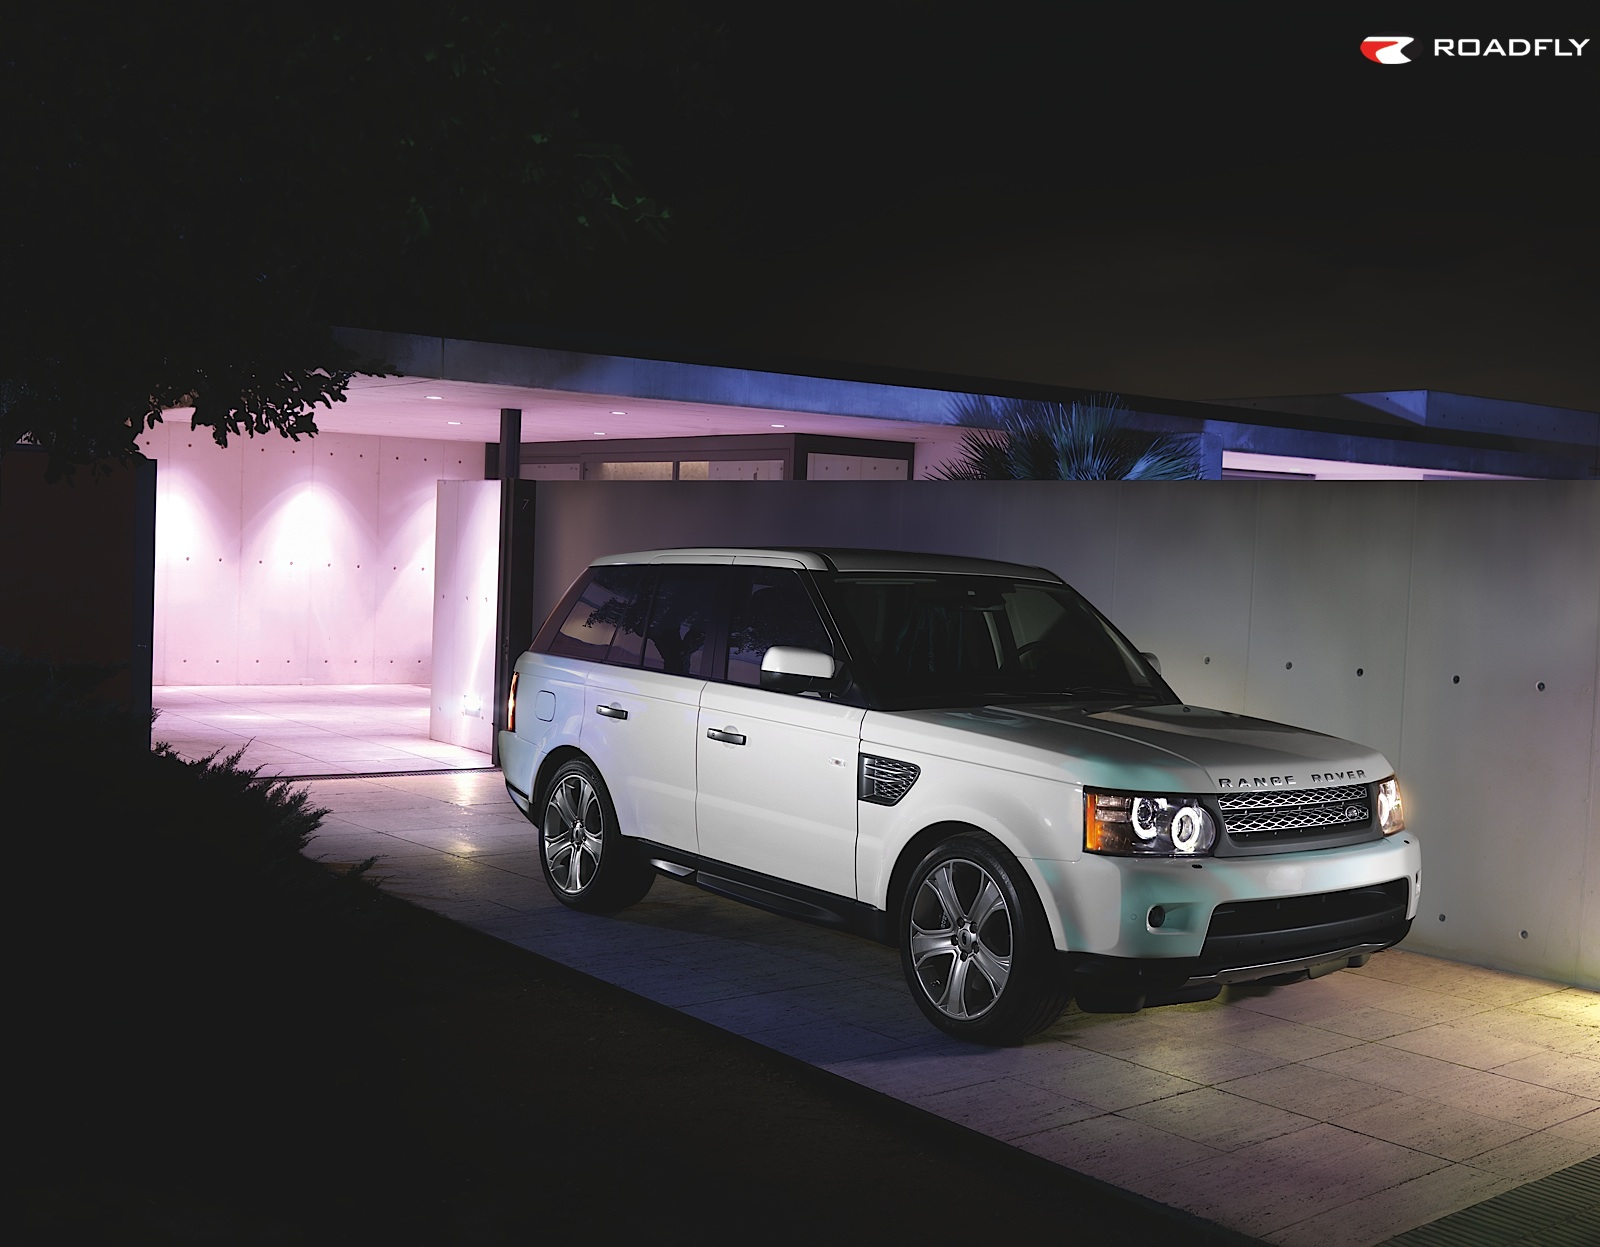 lea michele 2010 range rover sport supercharged. Black Bedroom Furniture Sets. Home Design Ideas